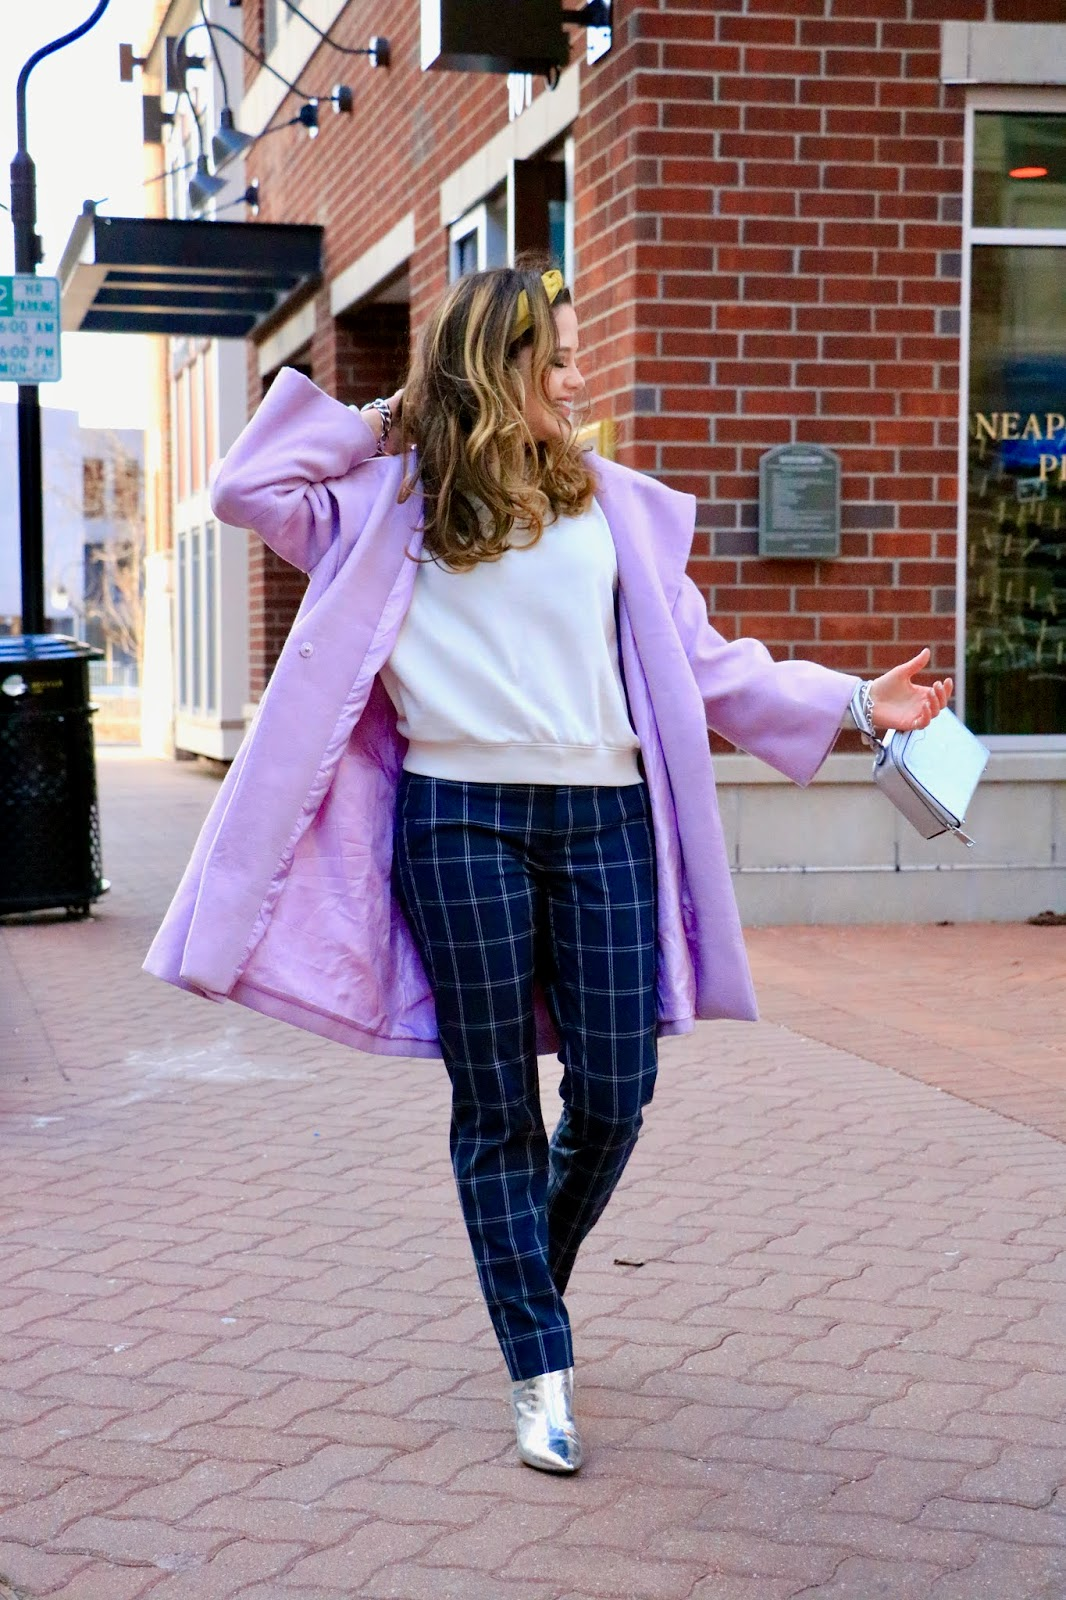 Nyc fashion blogger Kathleen Harper showing how to dress up a sweatshirt